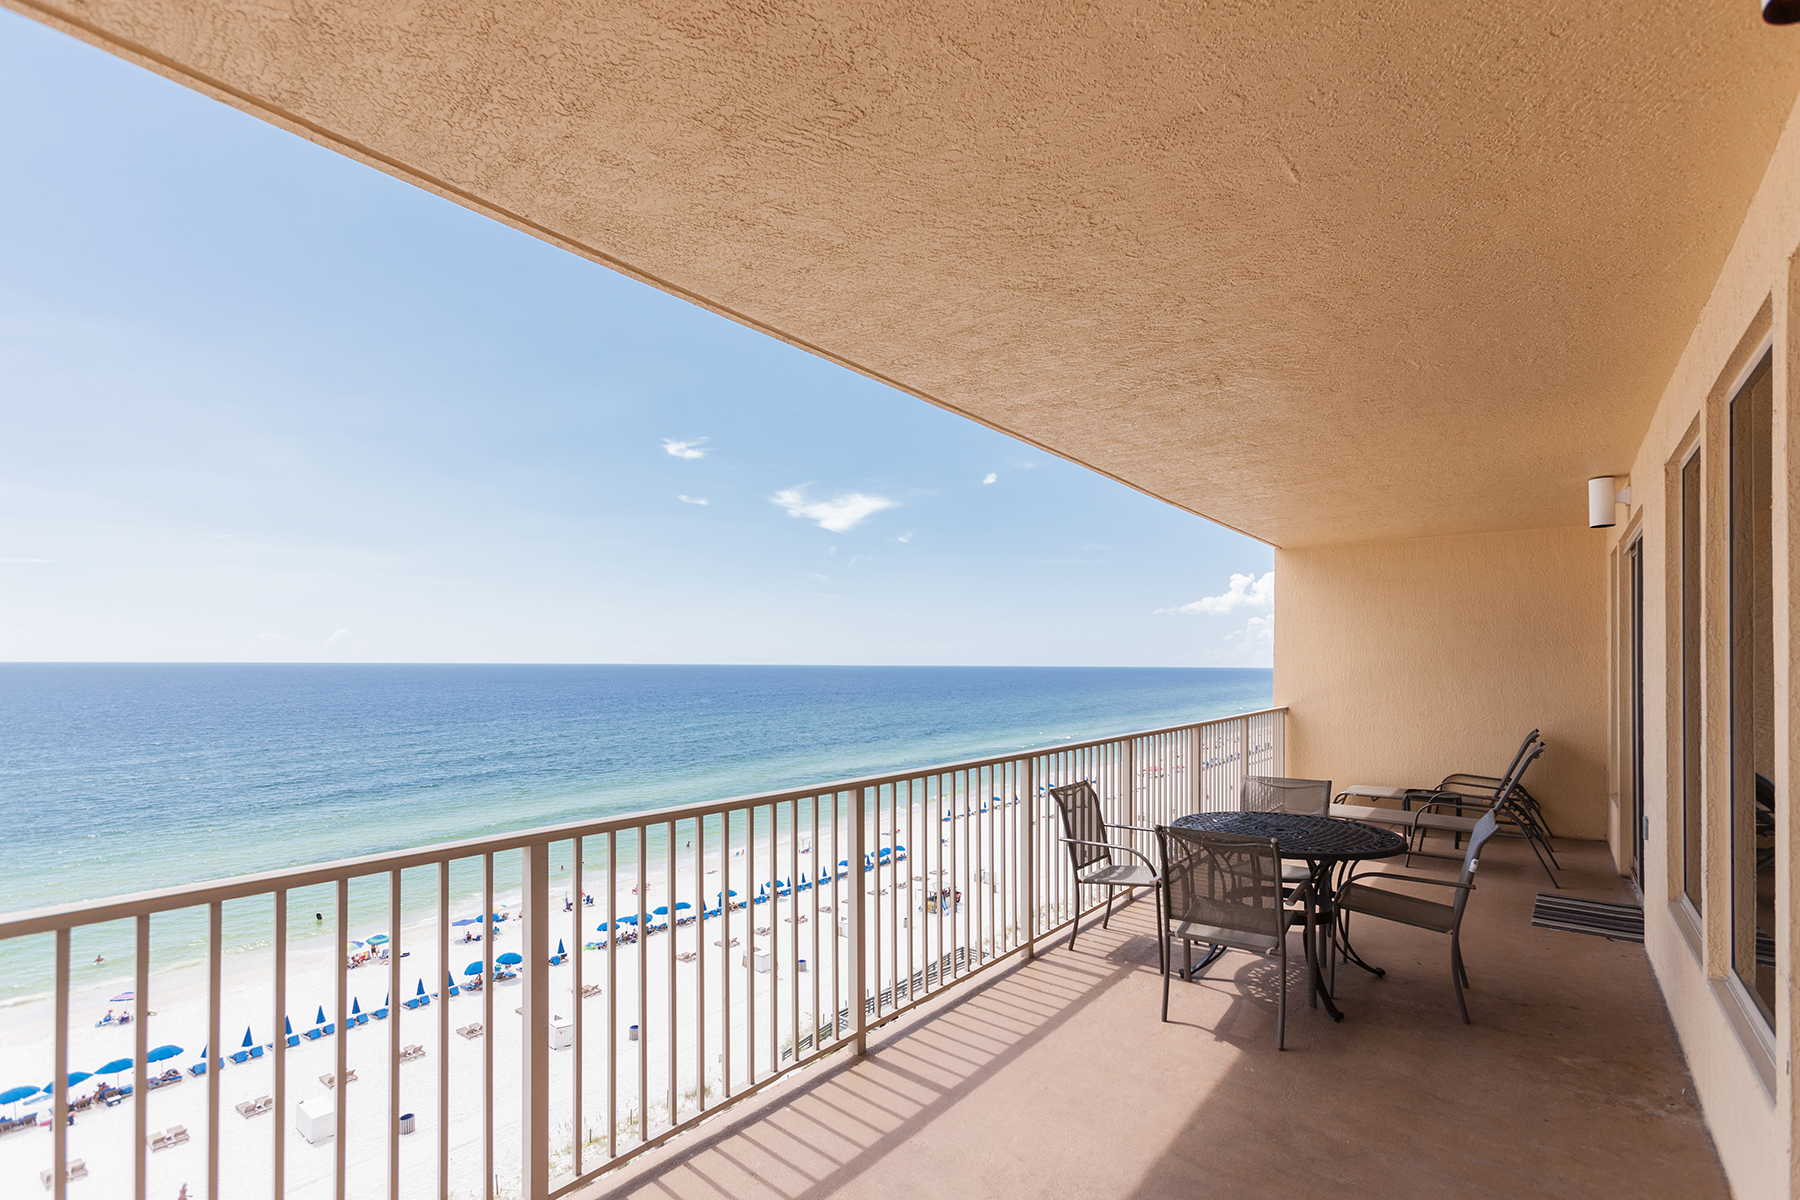 Kat Mülkiyeti için Satış at Beautiful End Unit at Gulf Crest with Panoramic Views 8715 Surf Dr 801A Panama City Beach, Florida 32408 Amerika Birleşik Devletleri